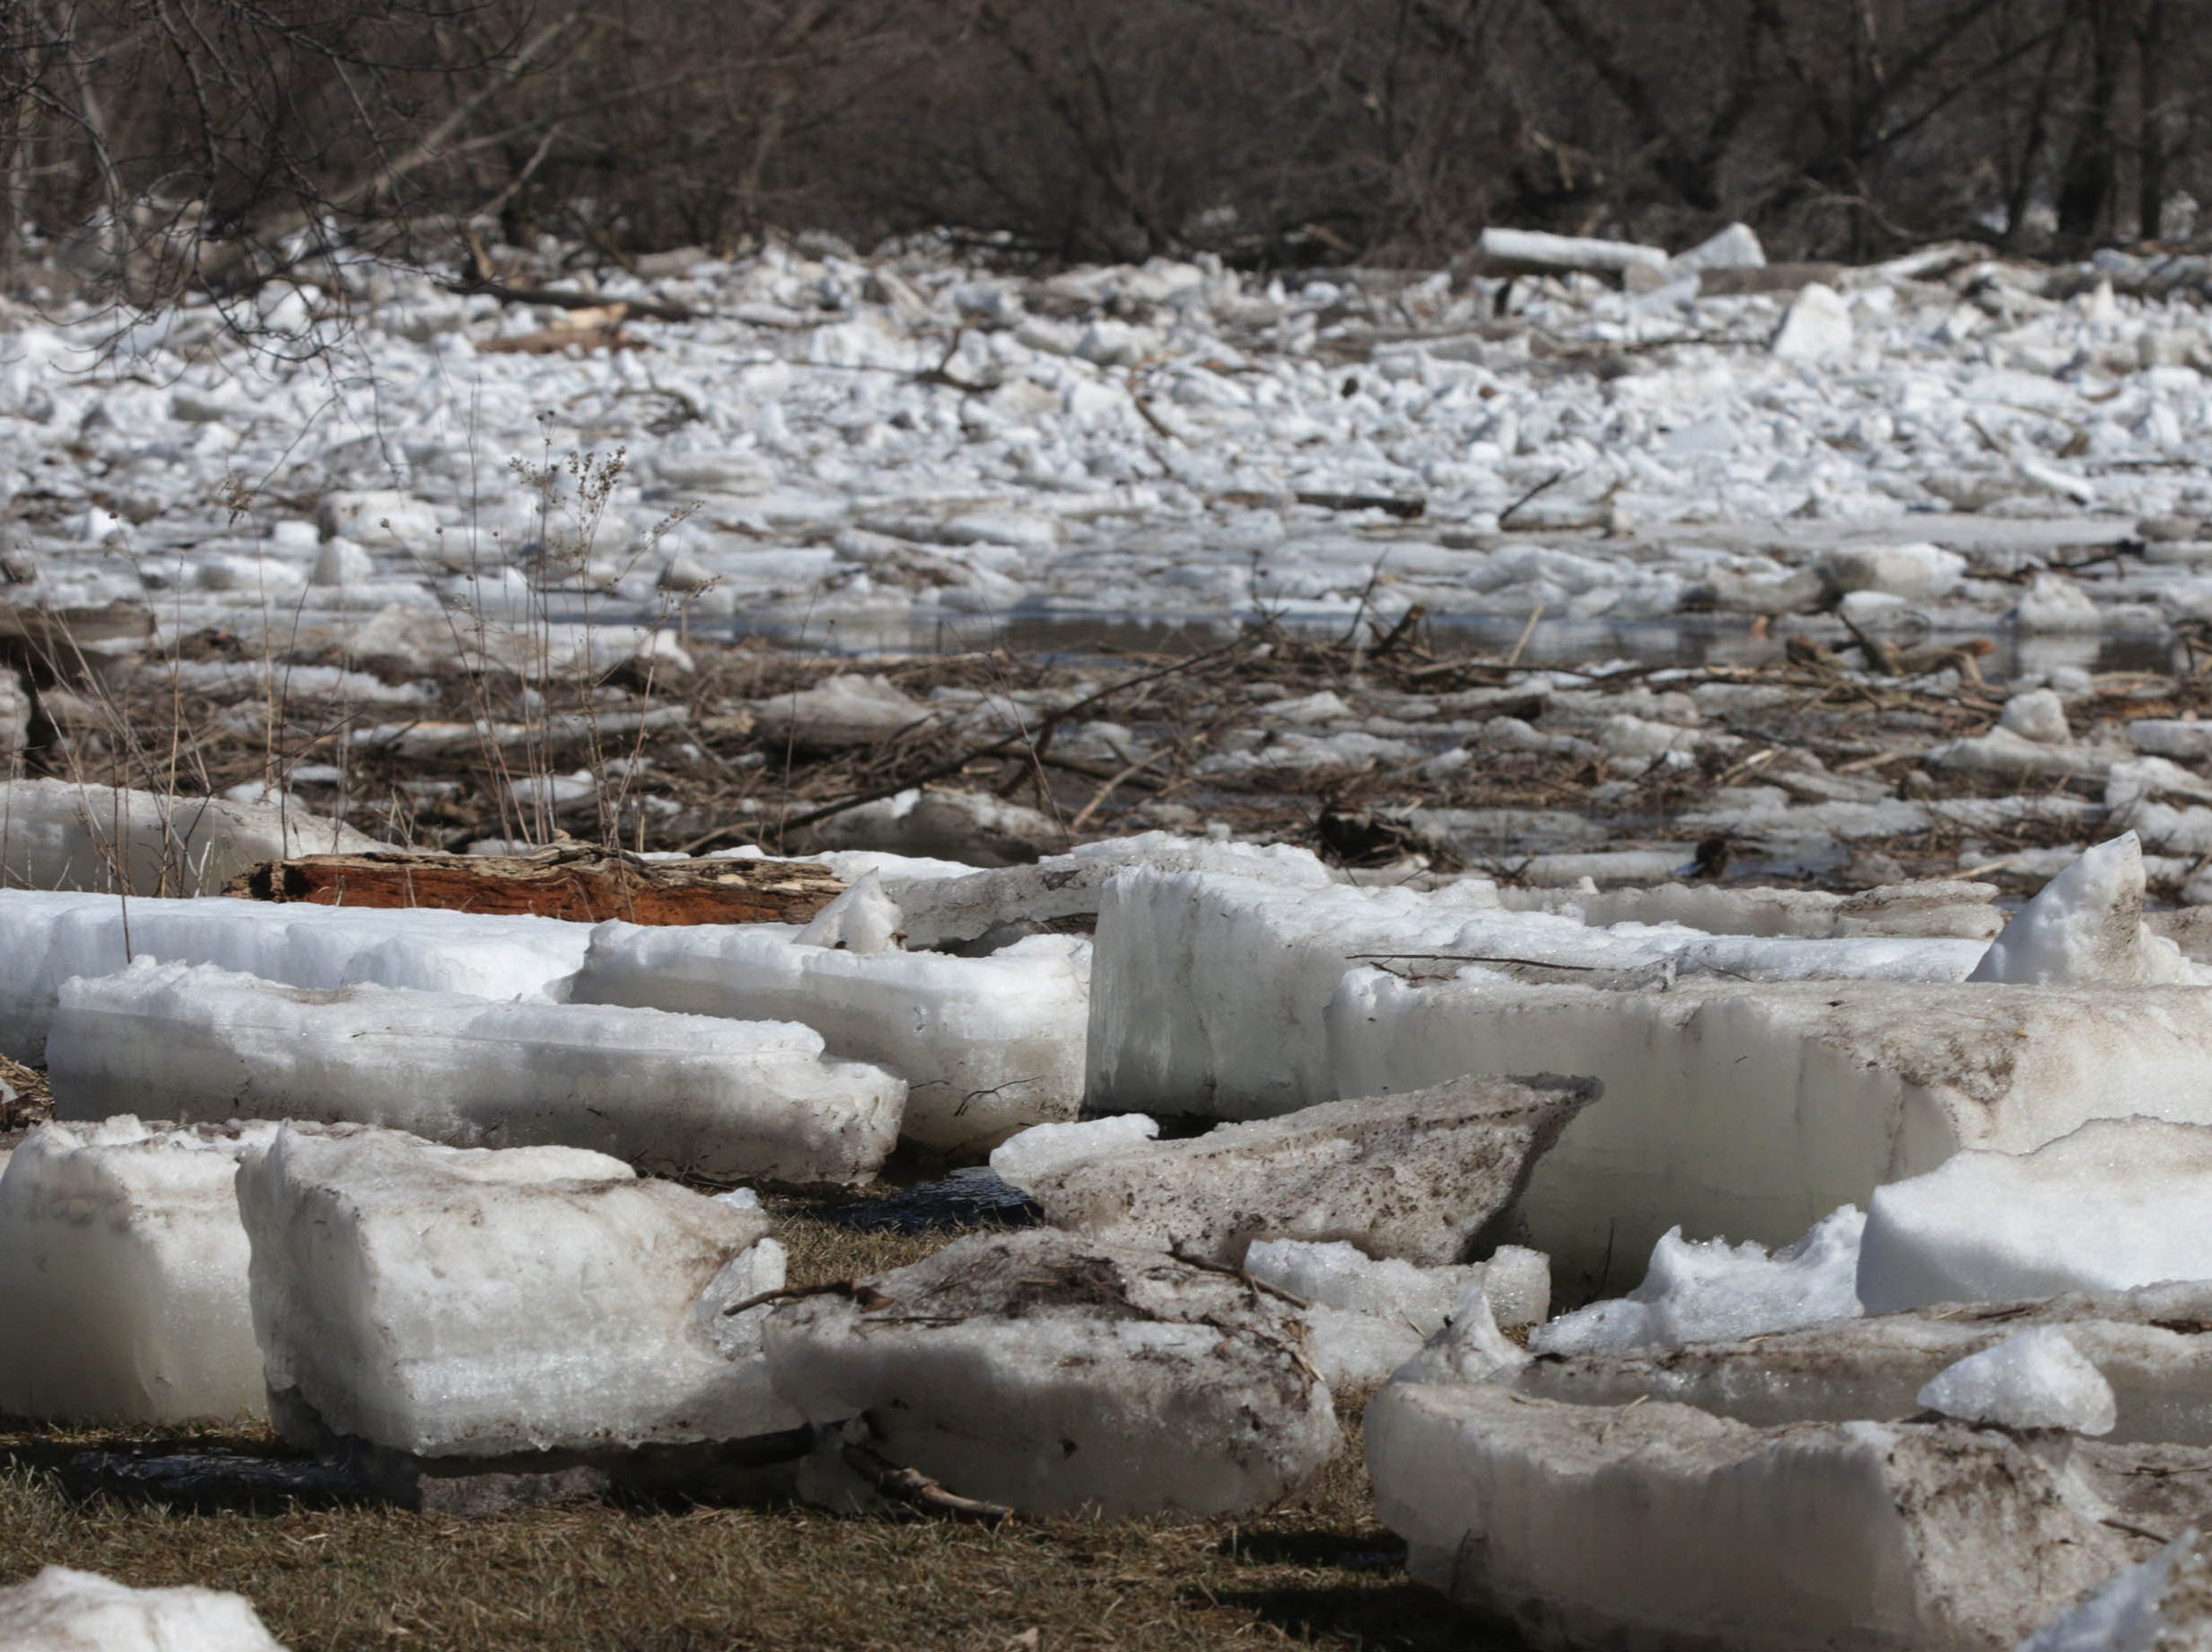 Ice slabs cover the parking lot and land near Nemschoff, Tuesday, March 19, 2019, in Sheboygan, Wis.